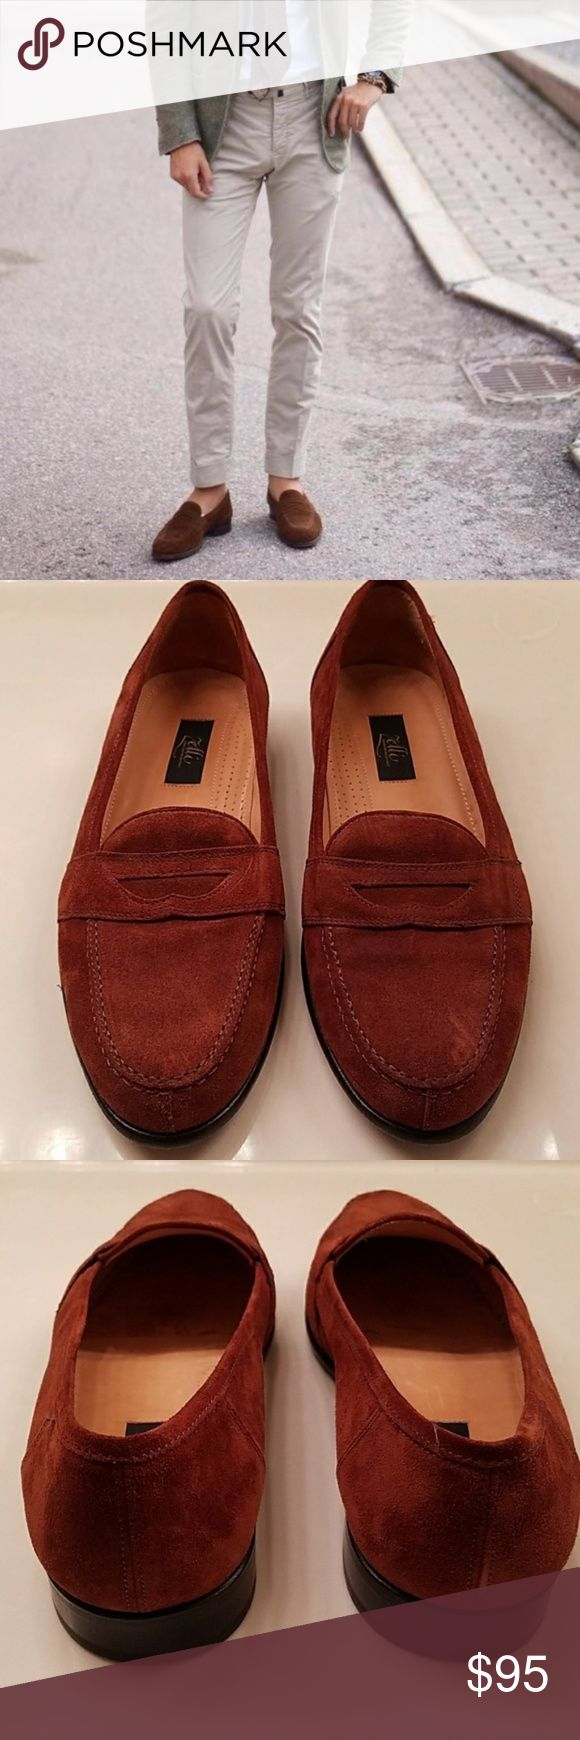 Zelli Brown Suede Loafers Zelli Brown Suede Loafers, size 12. Zelli shoes are hand crafted in Italy. These have been worn less than a dozen times. Versatile wardrobe staple. Suede is perfect for the fall and winter and goes great with jeans, khakis, dress pants, cords. Cover photo is not of actual item, just shown for styling purposes. Zelli Shoes Loafers & Slip-Ons